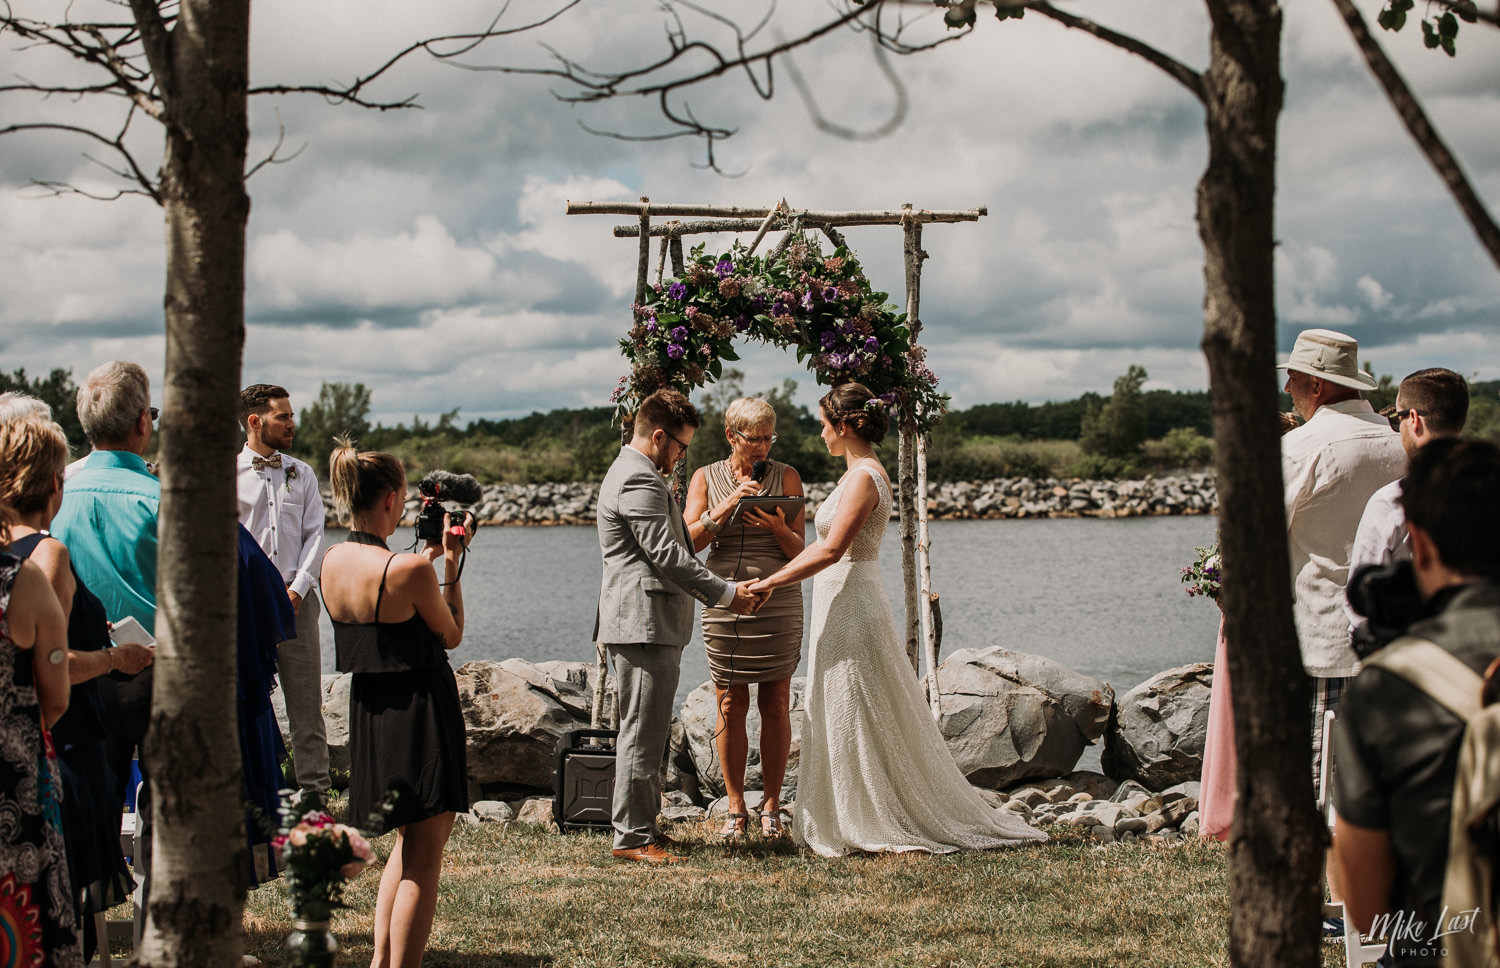 Wedding ceremony on the Mersey River, Nova Scotia.